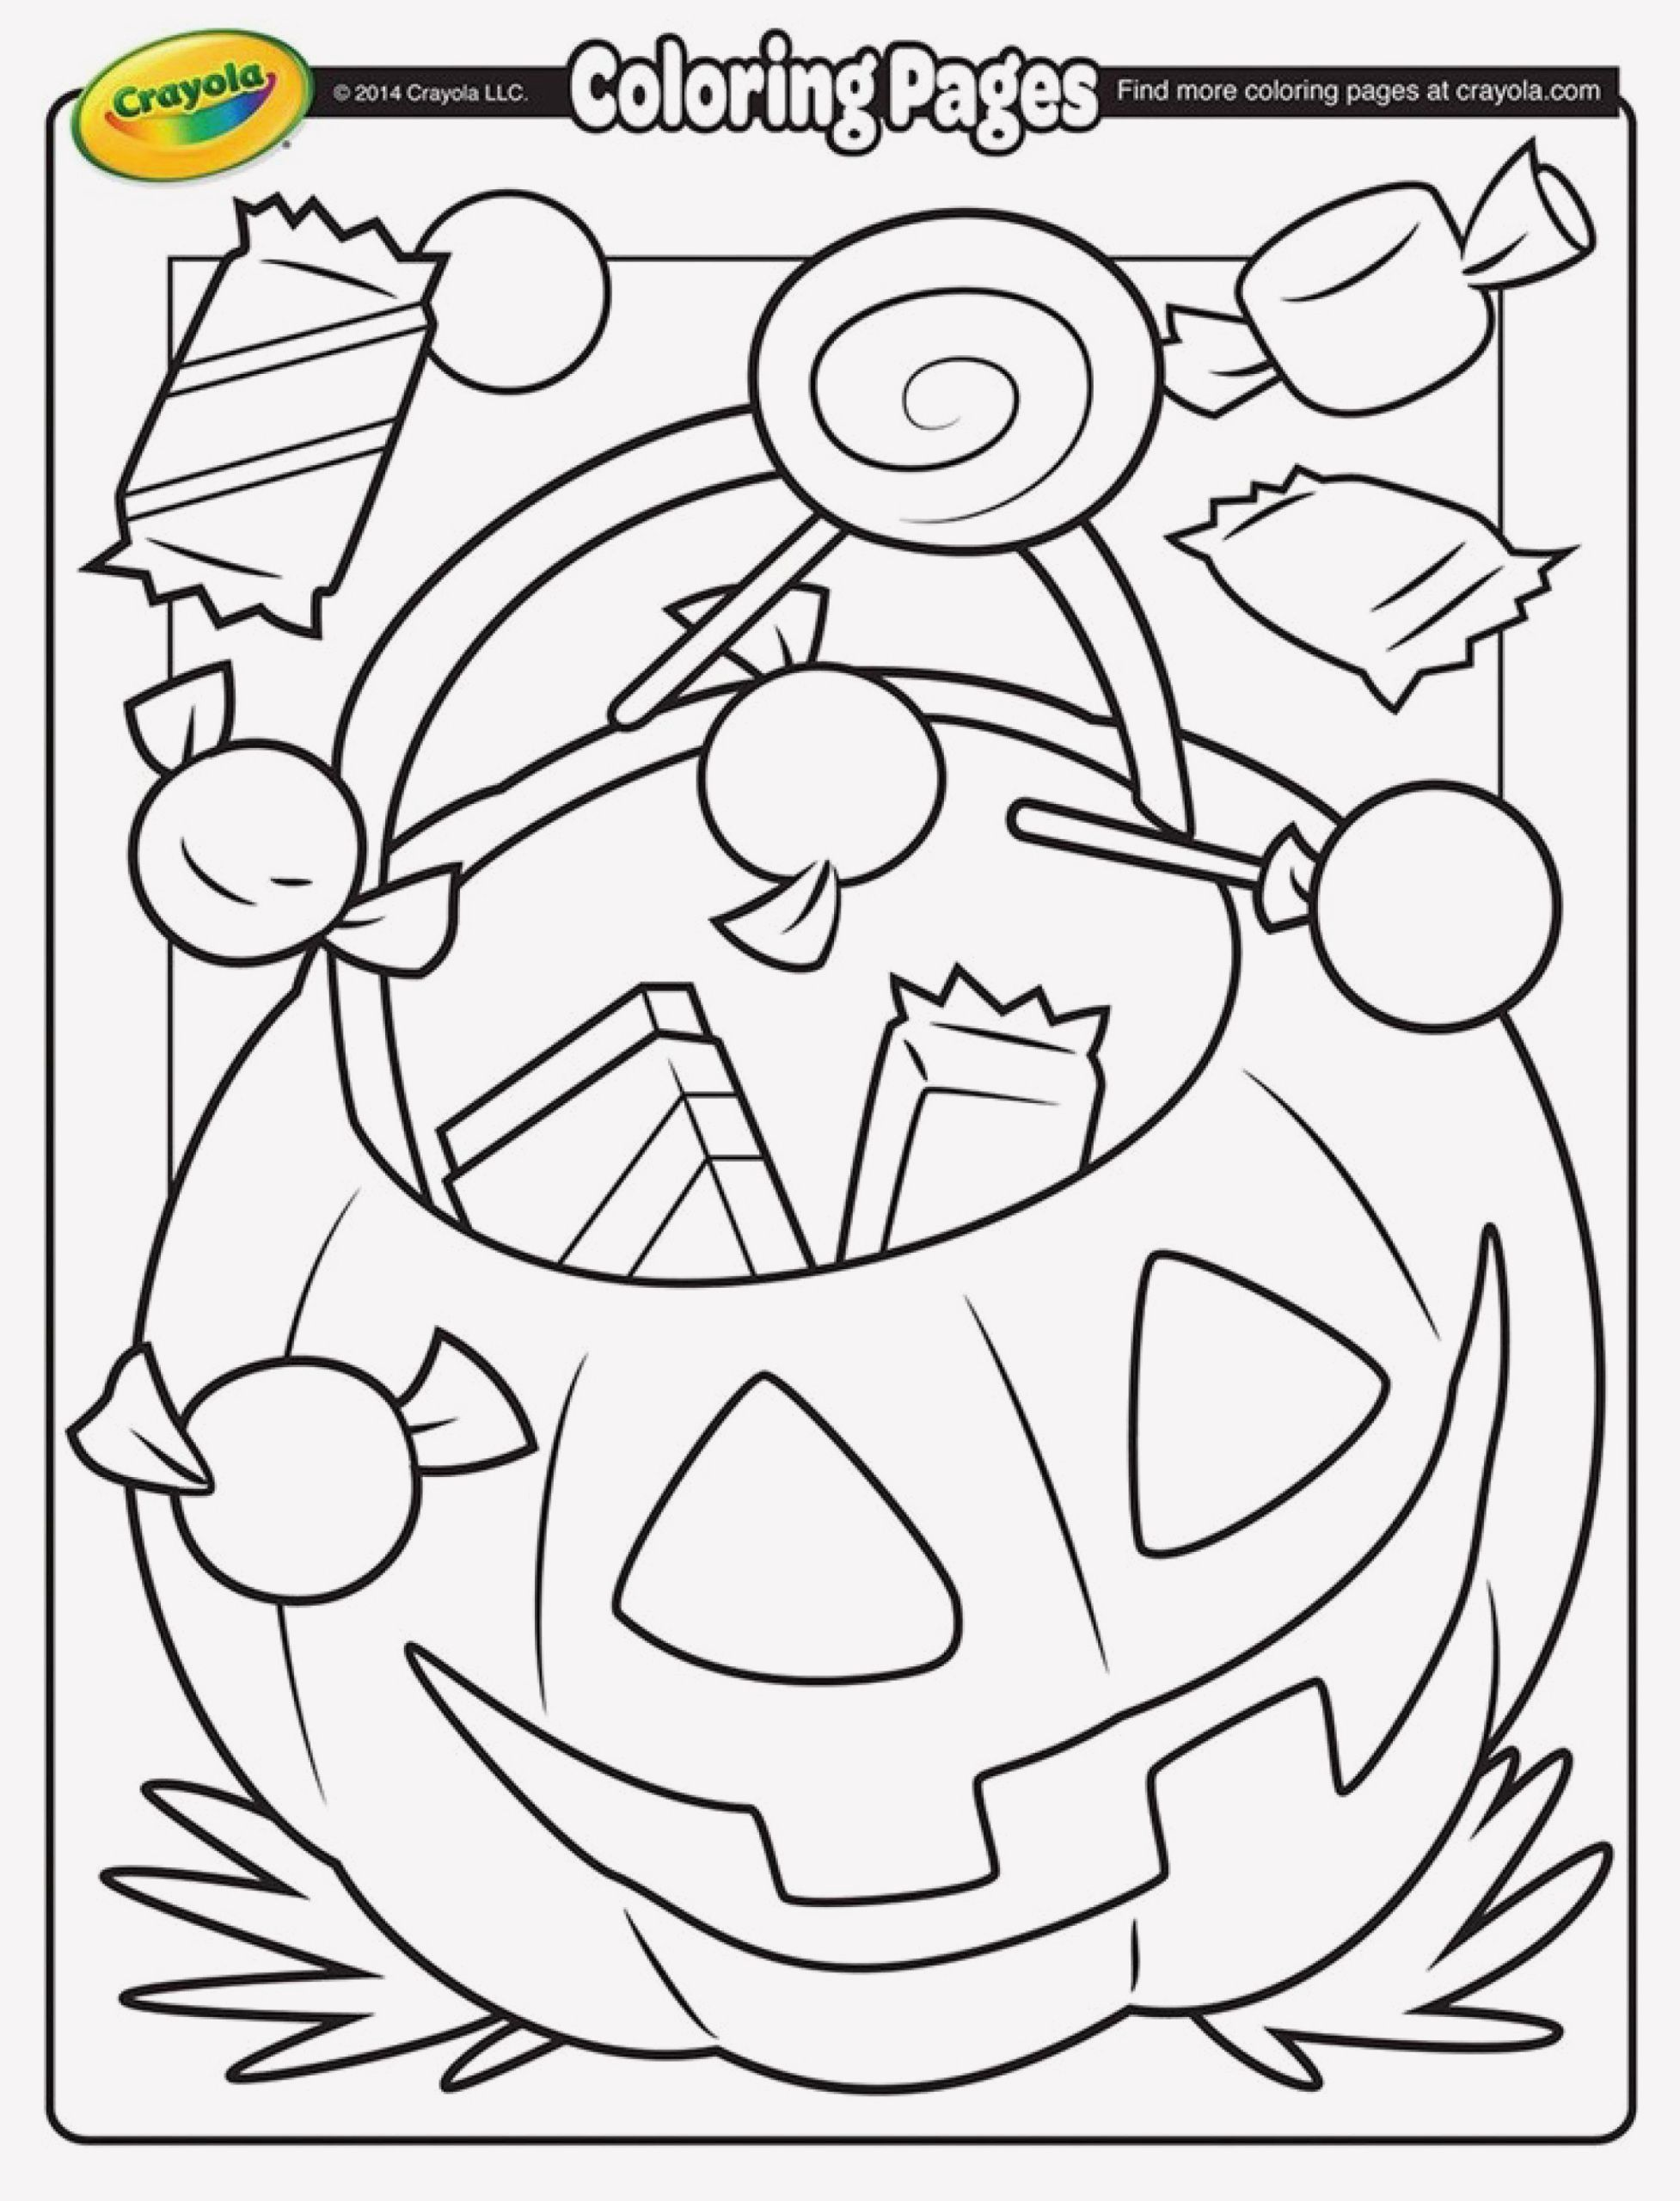 Easter Coloring Pages Paw Patrol You'll Love